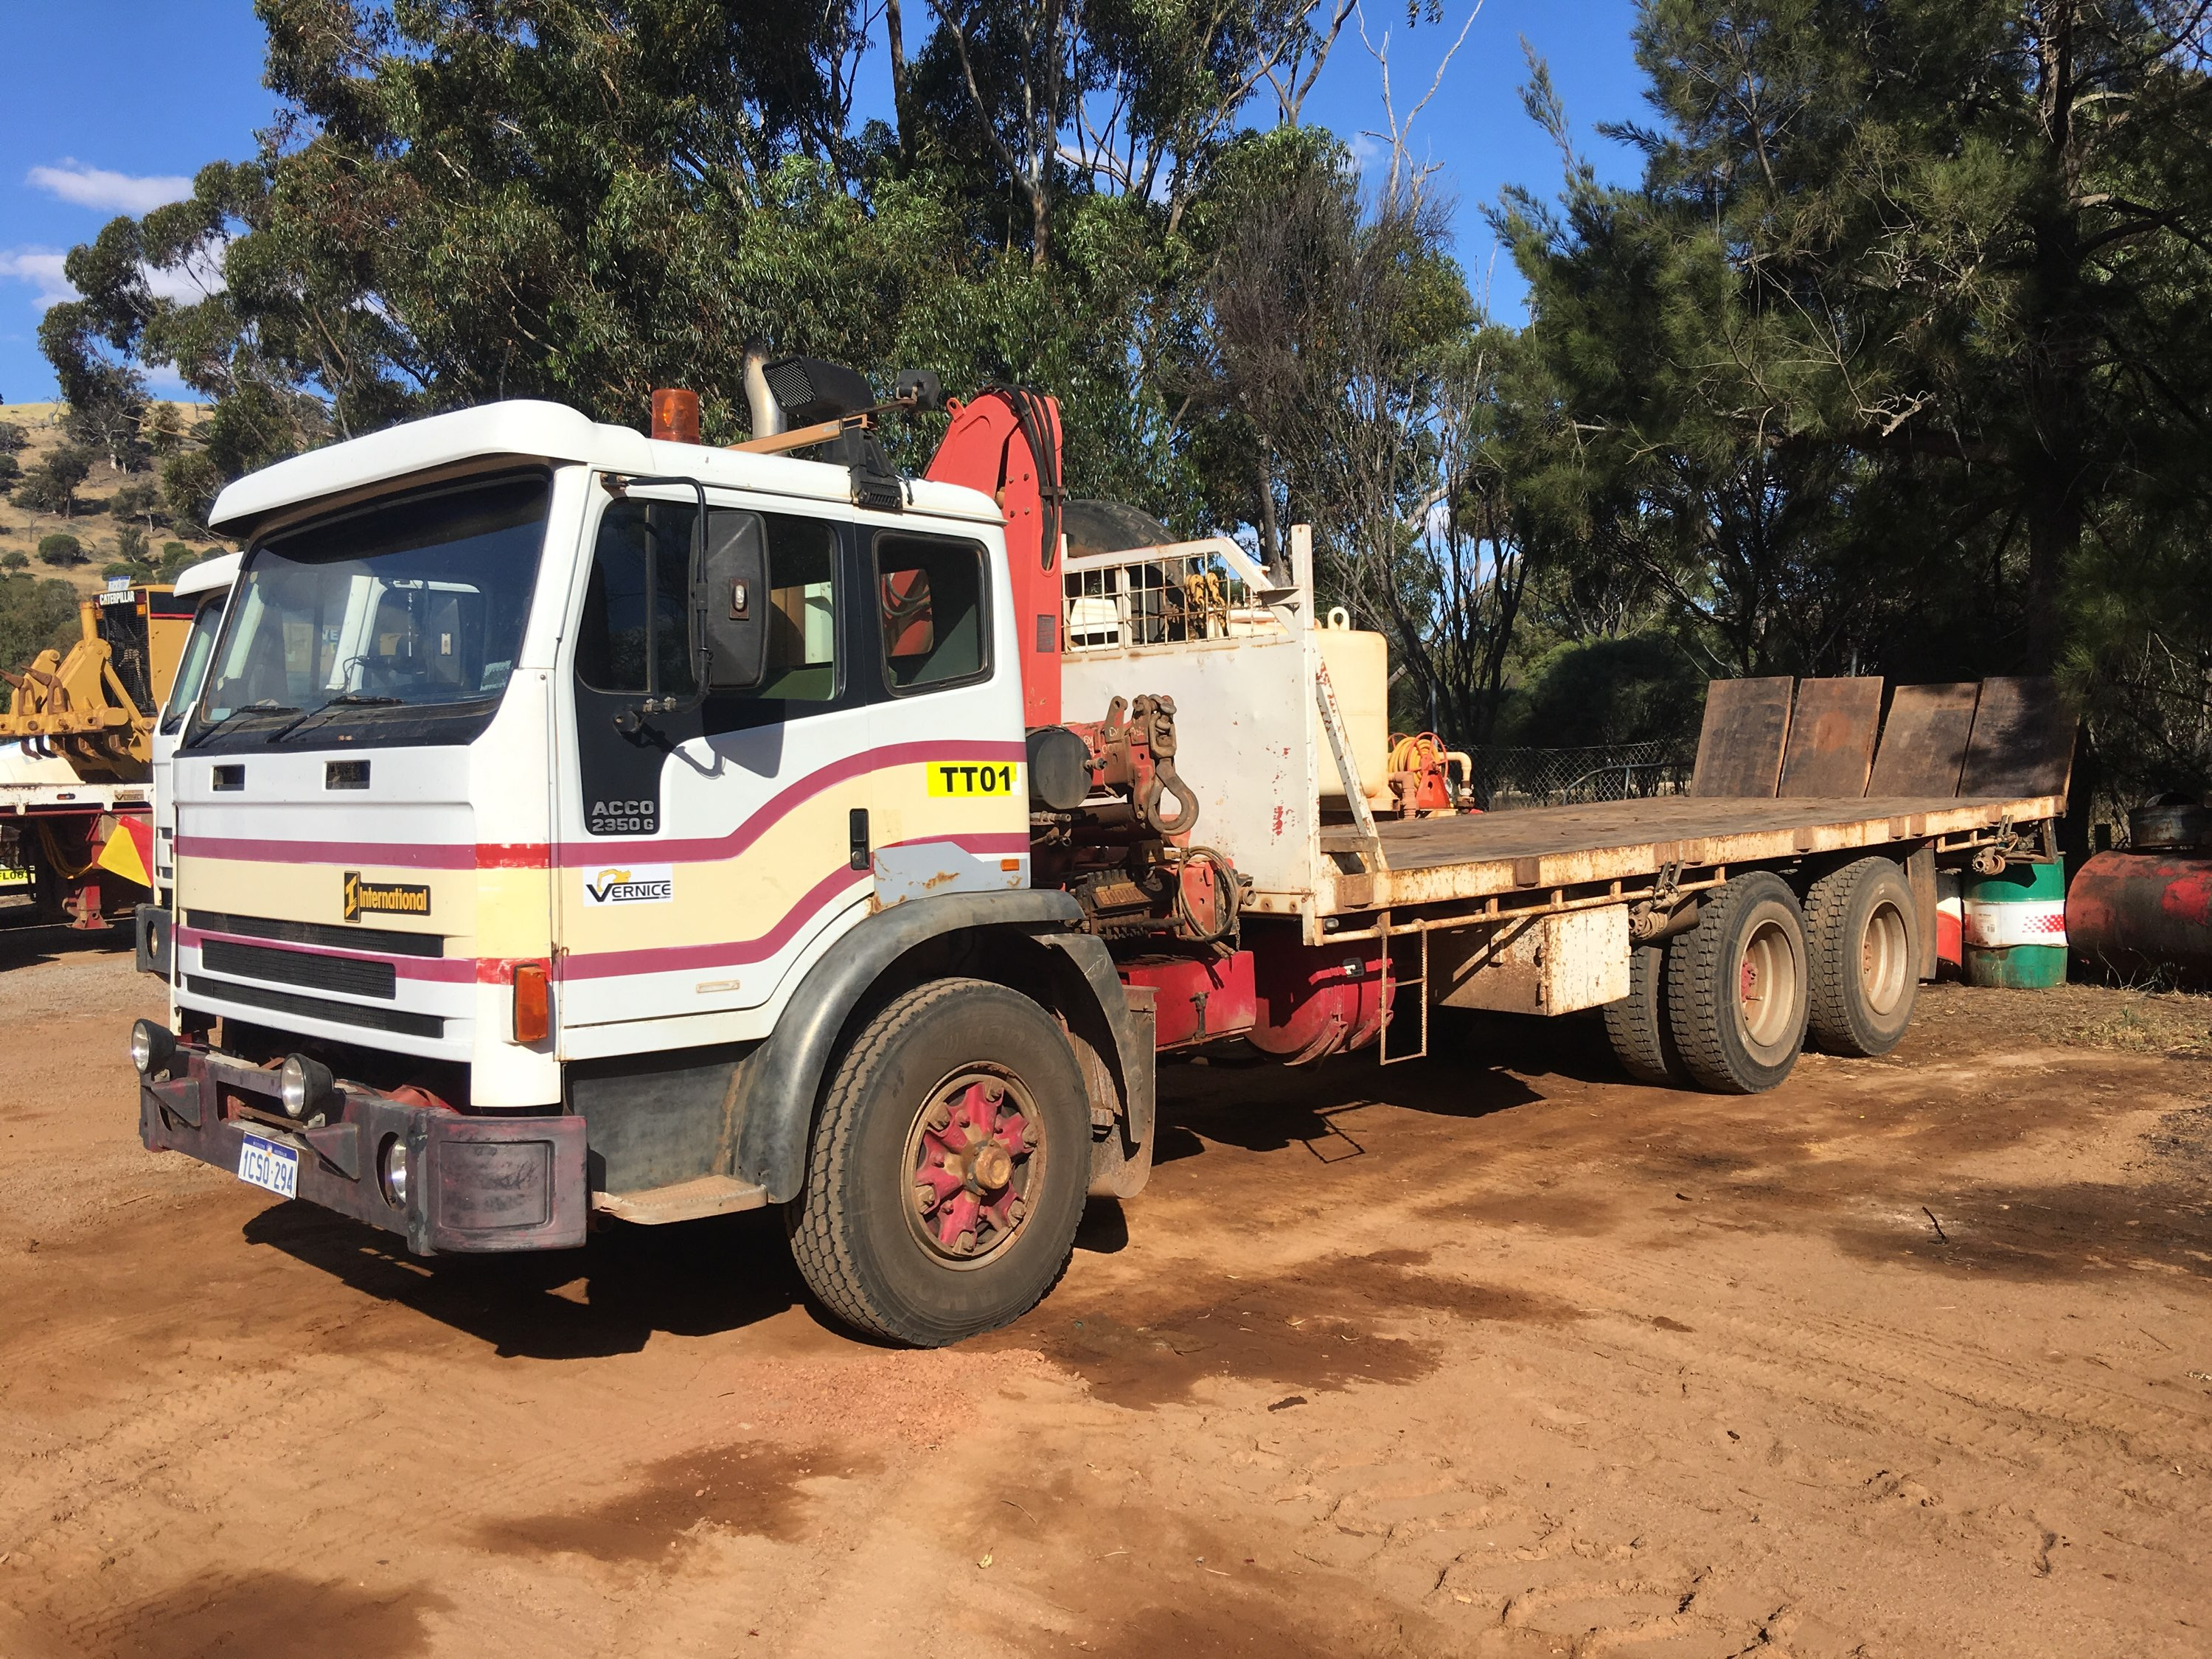 Vernice Civil Excavation and Earthmoving Services